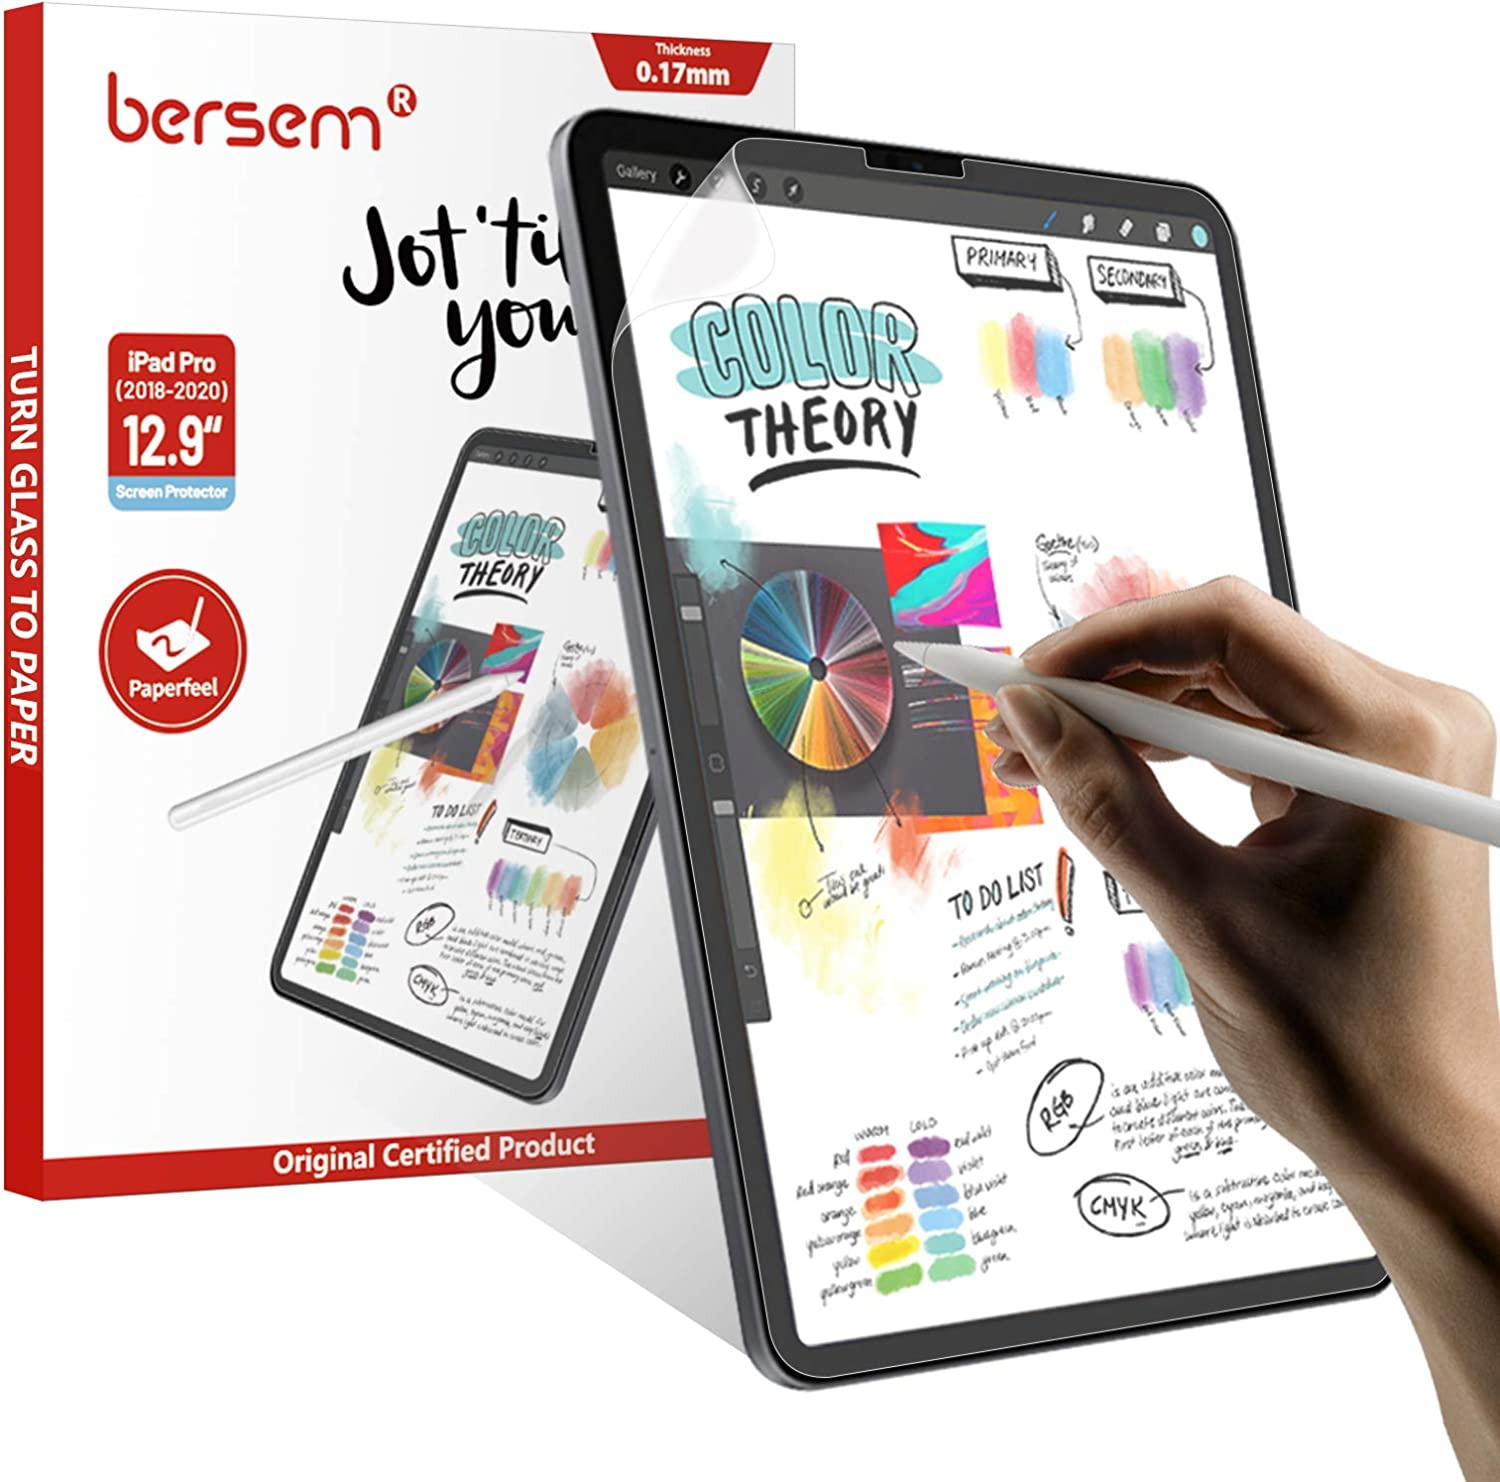 BERSEM [3 Pack] Paperfeel Screen Protector Compatible with iPad Pro 12.9-Inch (2021&2020 and 2018 Model), iPad Pro 12.9 2021 5th Generation Matte PET Film for Drawing Anti-Glare,Face ID Compatible, Paperfeel Film